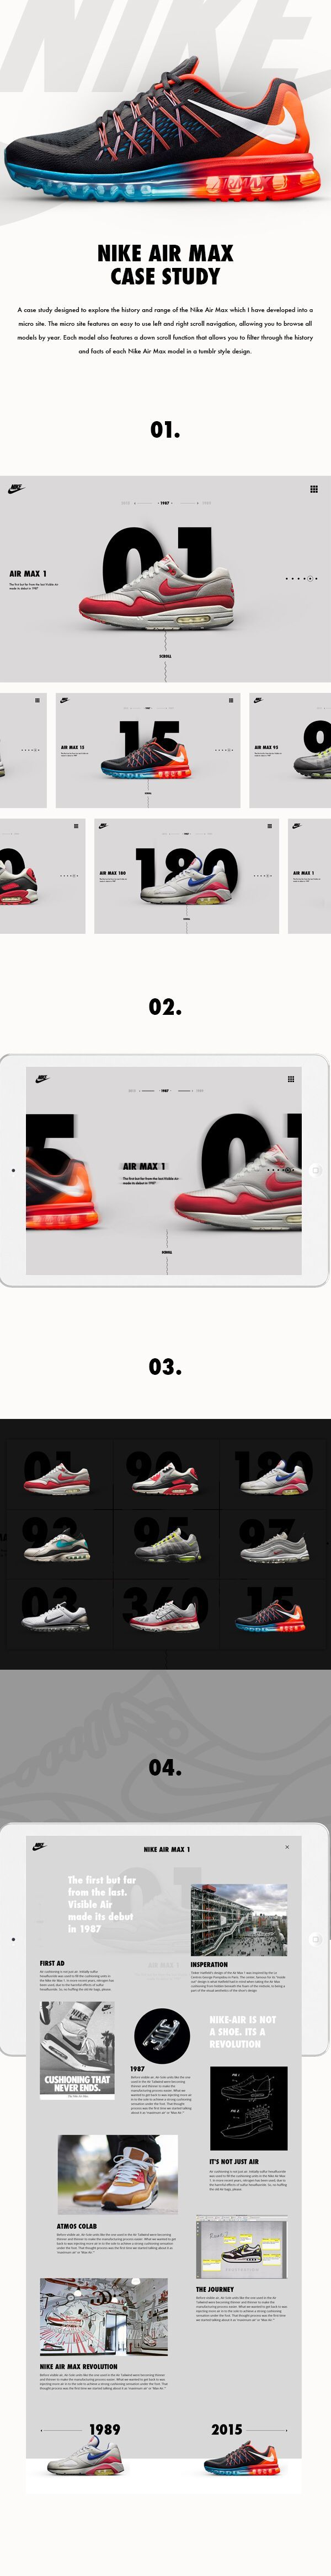 #nike #minimal #design #ui #ux #web #site #website #cool #fashion #sport